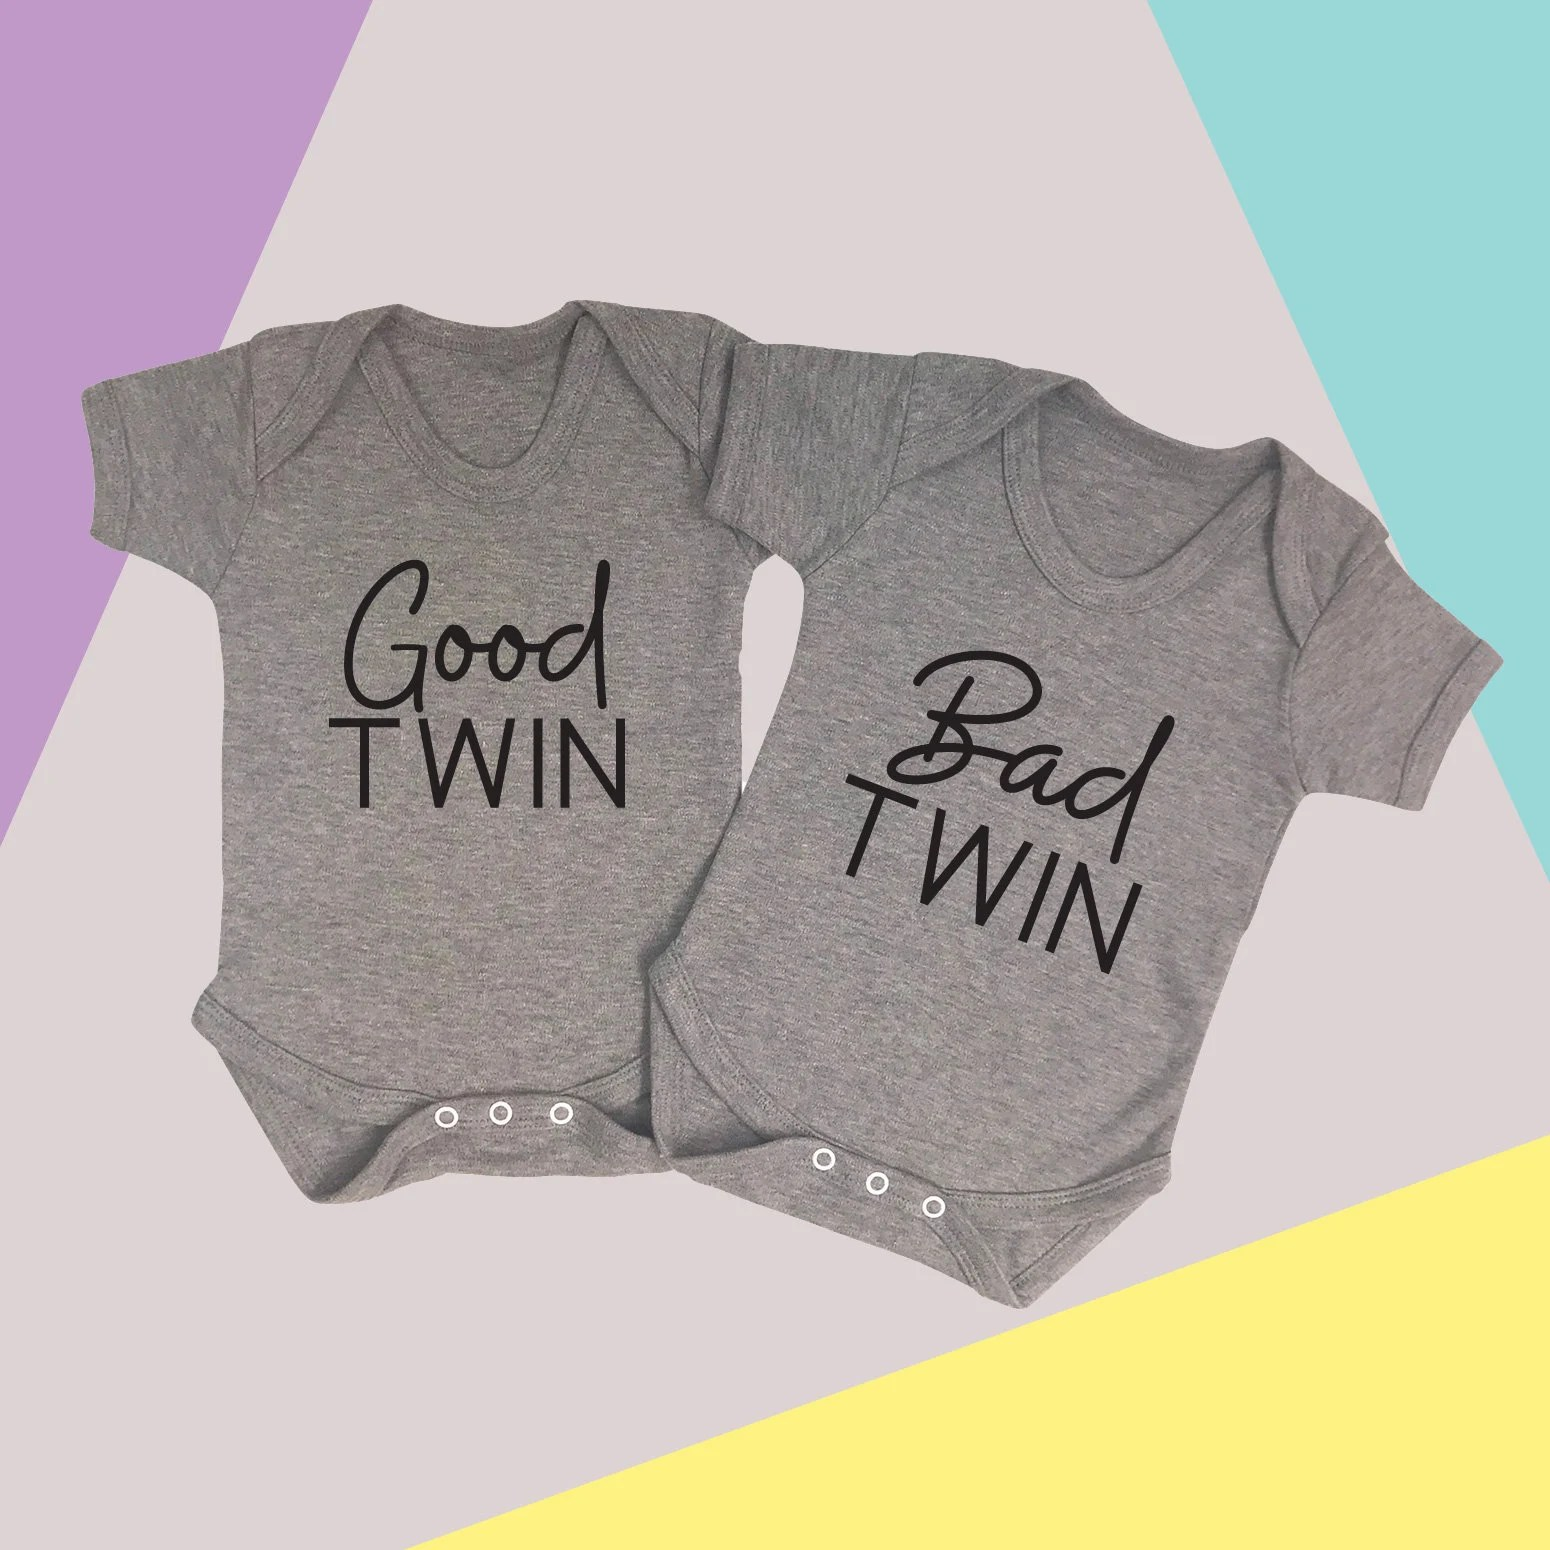 Bad Set For Baby Good Twin Bad Twin Good Twin Bad Twin Set Twin Baby Vest Set Twin Babygrows New Baby Gift Twins Christmas Baby Twins Funny Twin